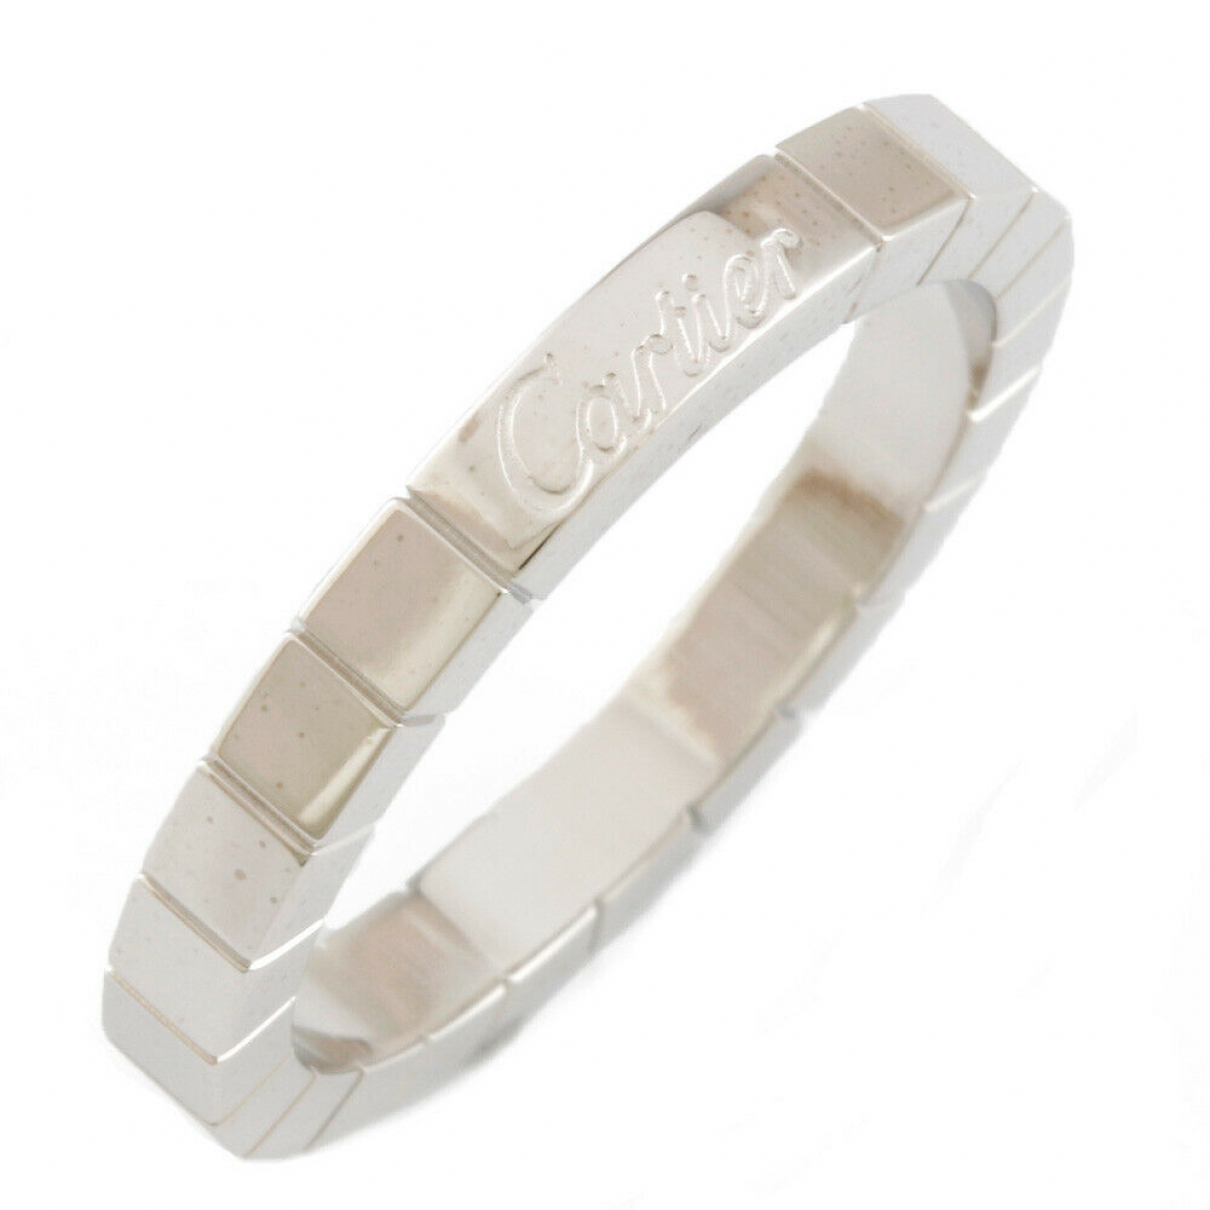 Cartier \N Ring in  Silber Weissgold